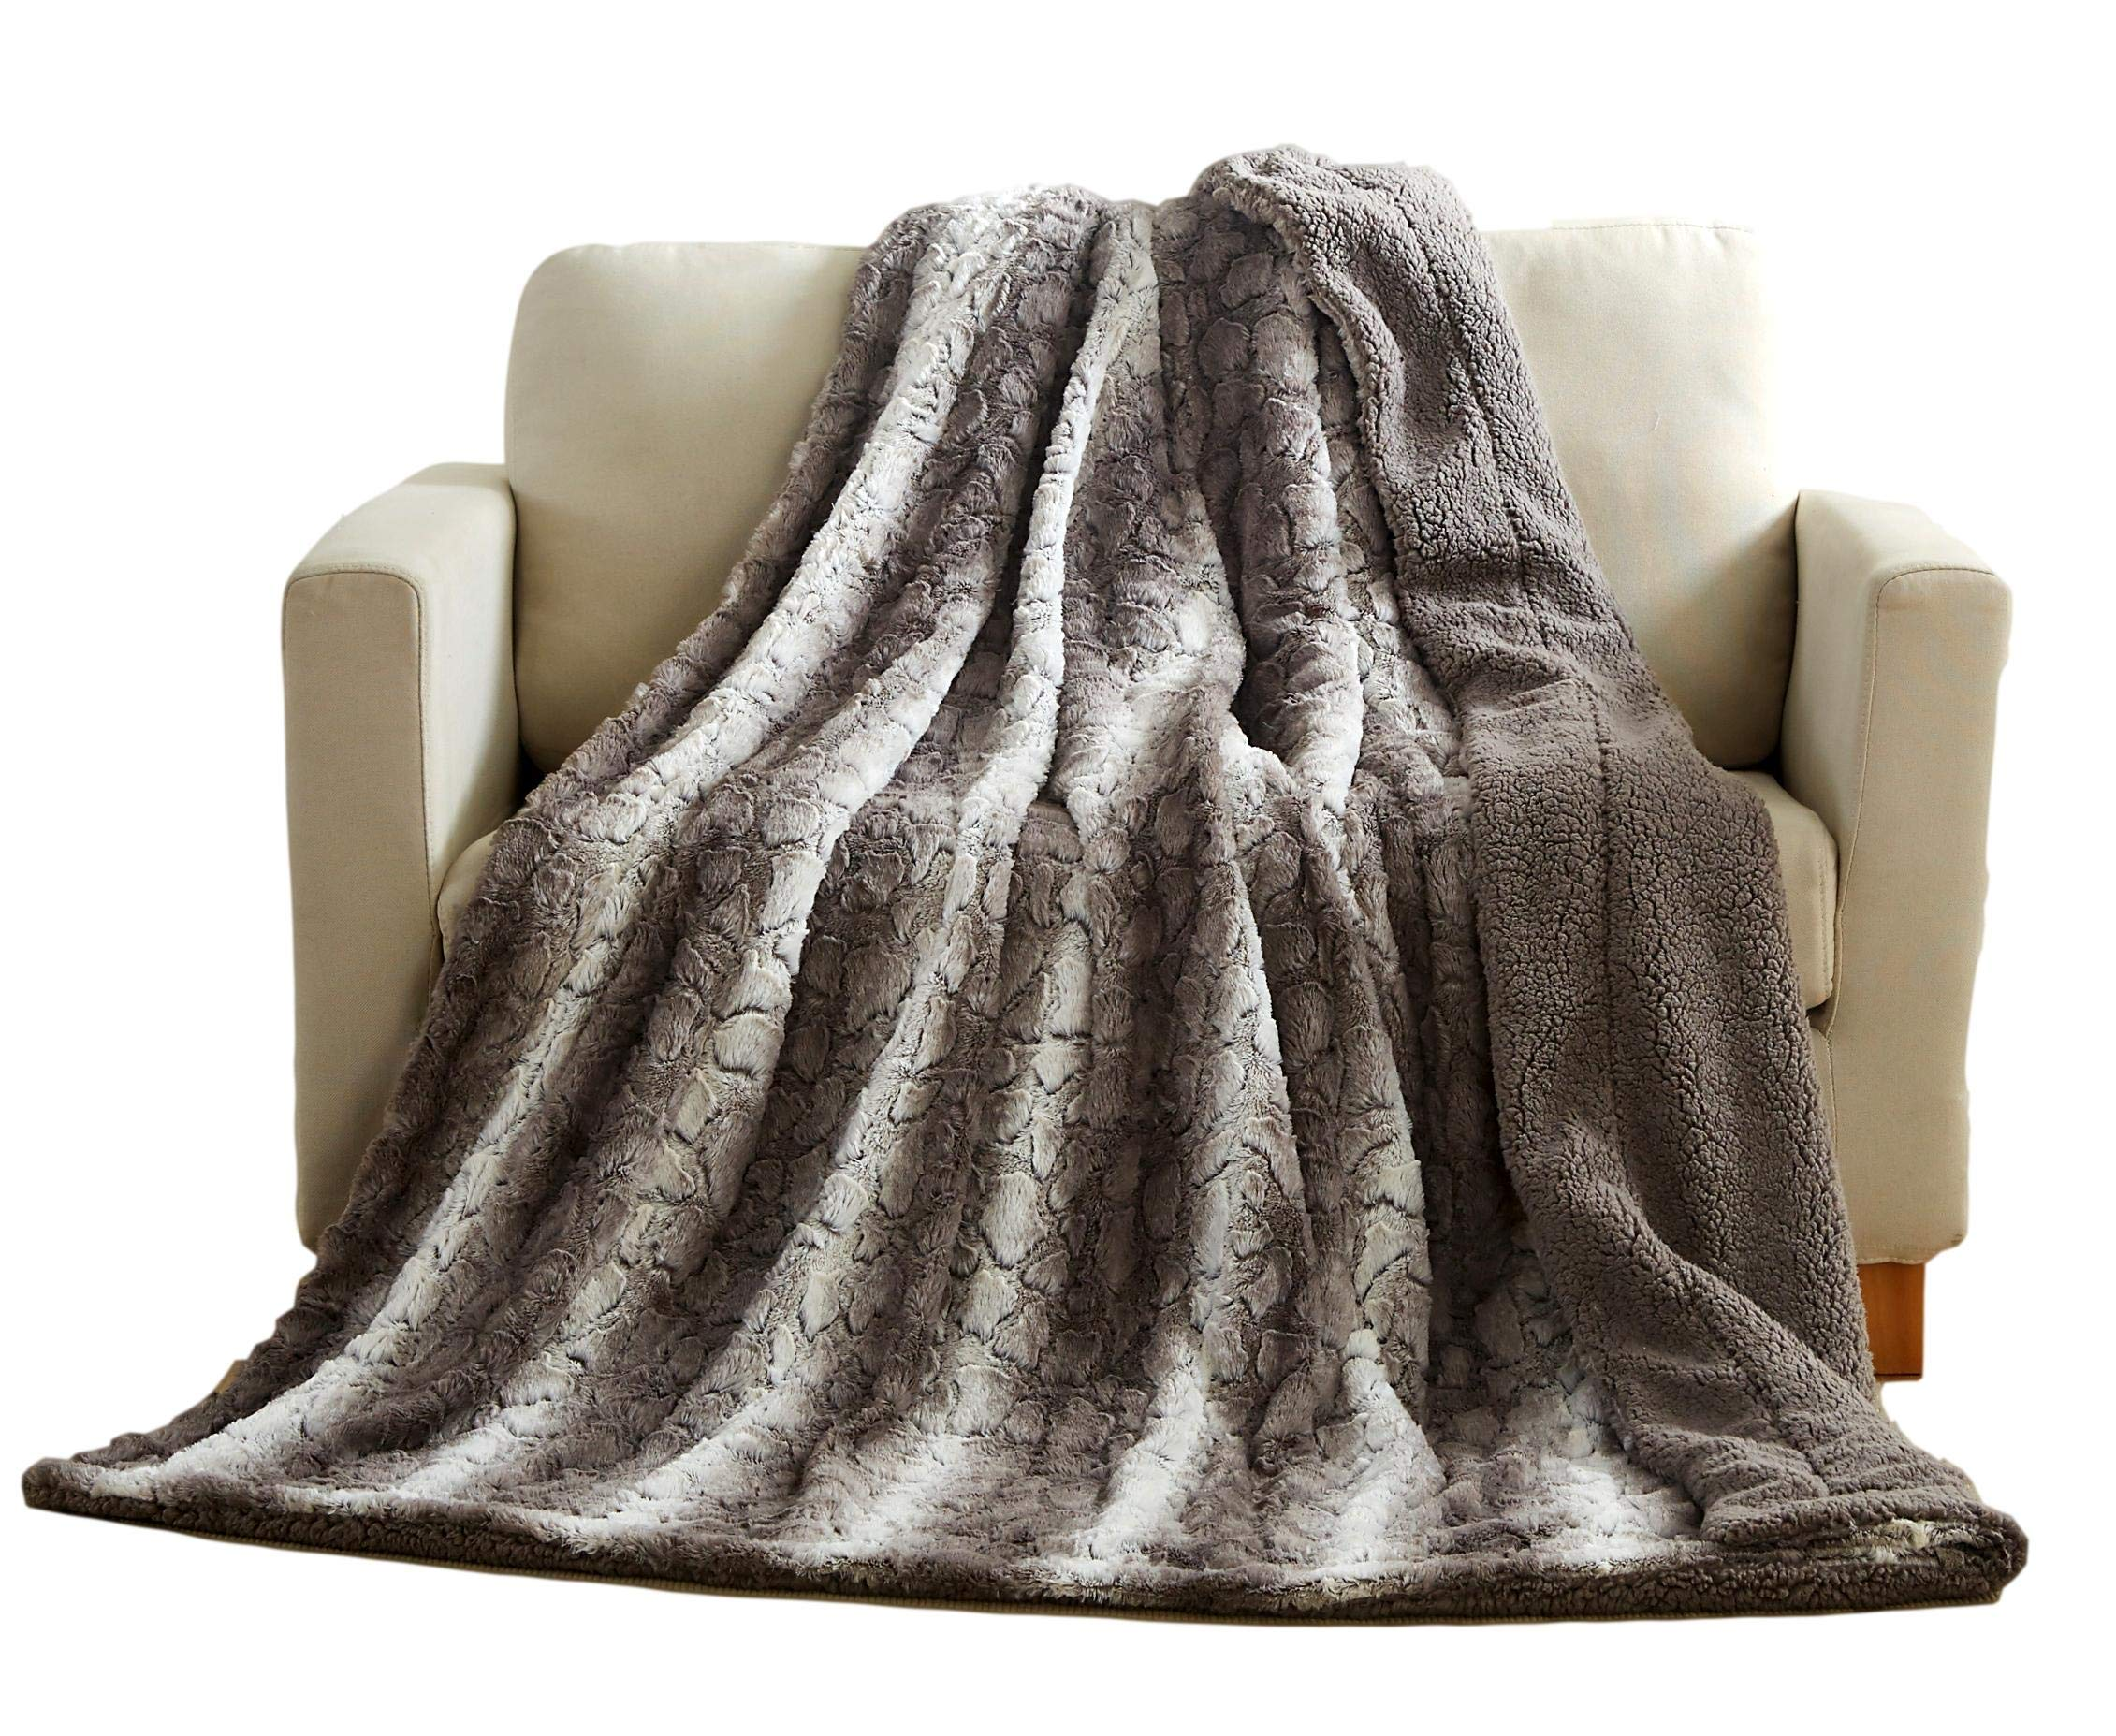 Tache Gray Snow Giraffe Super Soft Warm Faux Fur with Sherpa Back Bed Blanket, Queen Size, 90 x 90 Inch